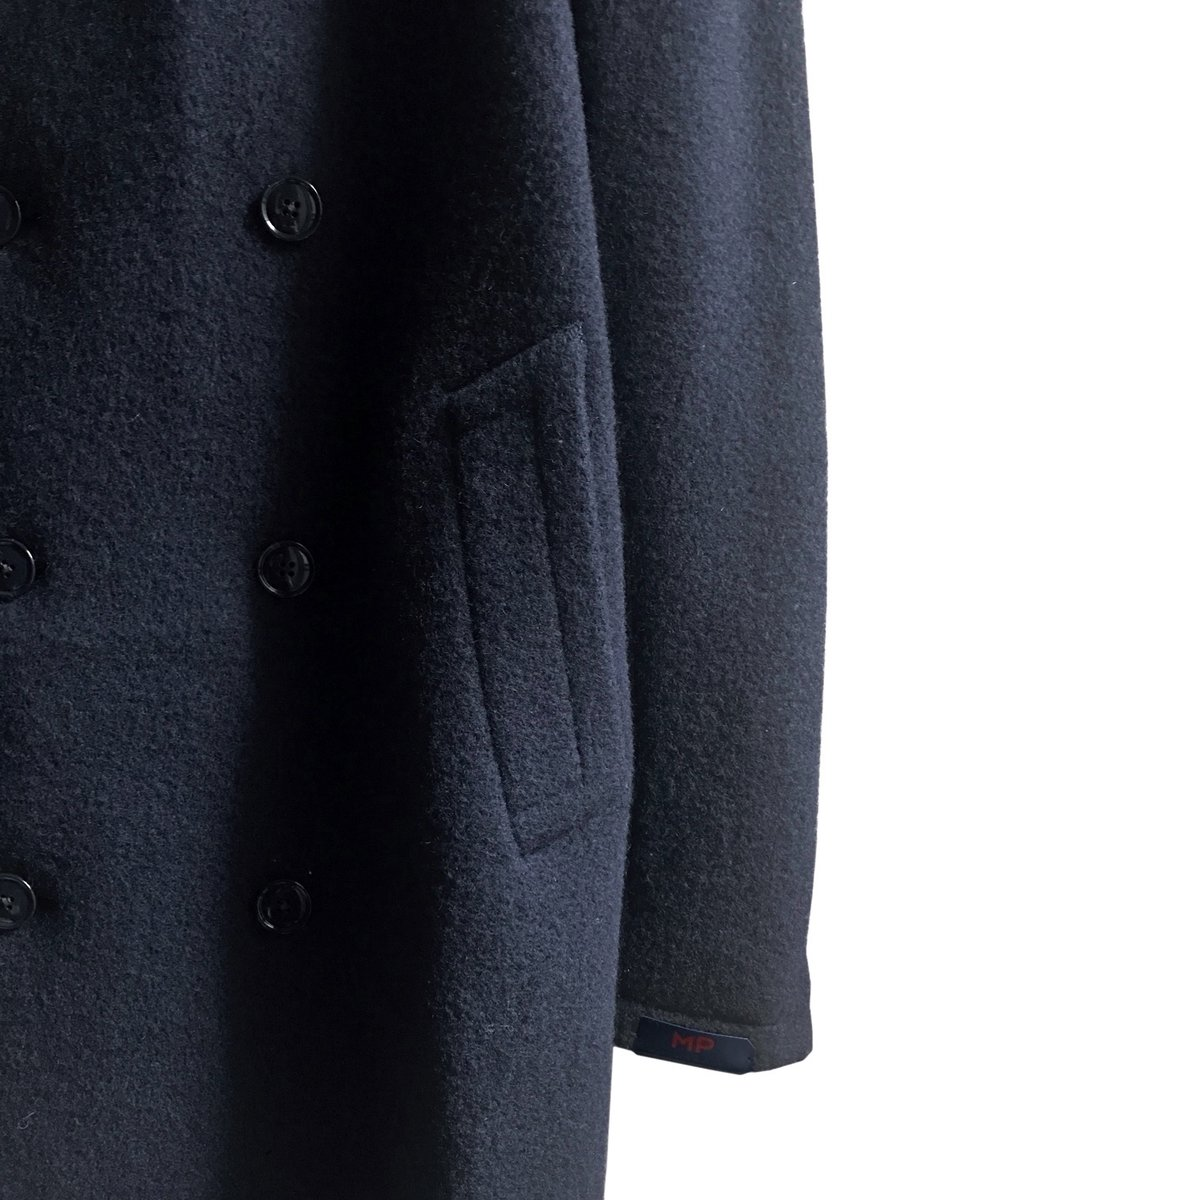 mp massimo piombo double breasted brushed wool coat detail.jpg